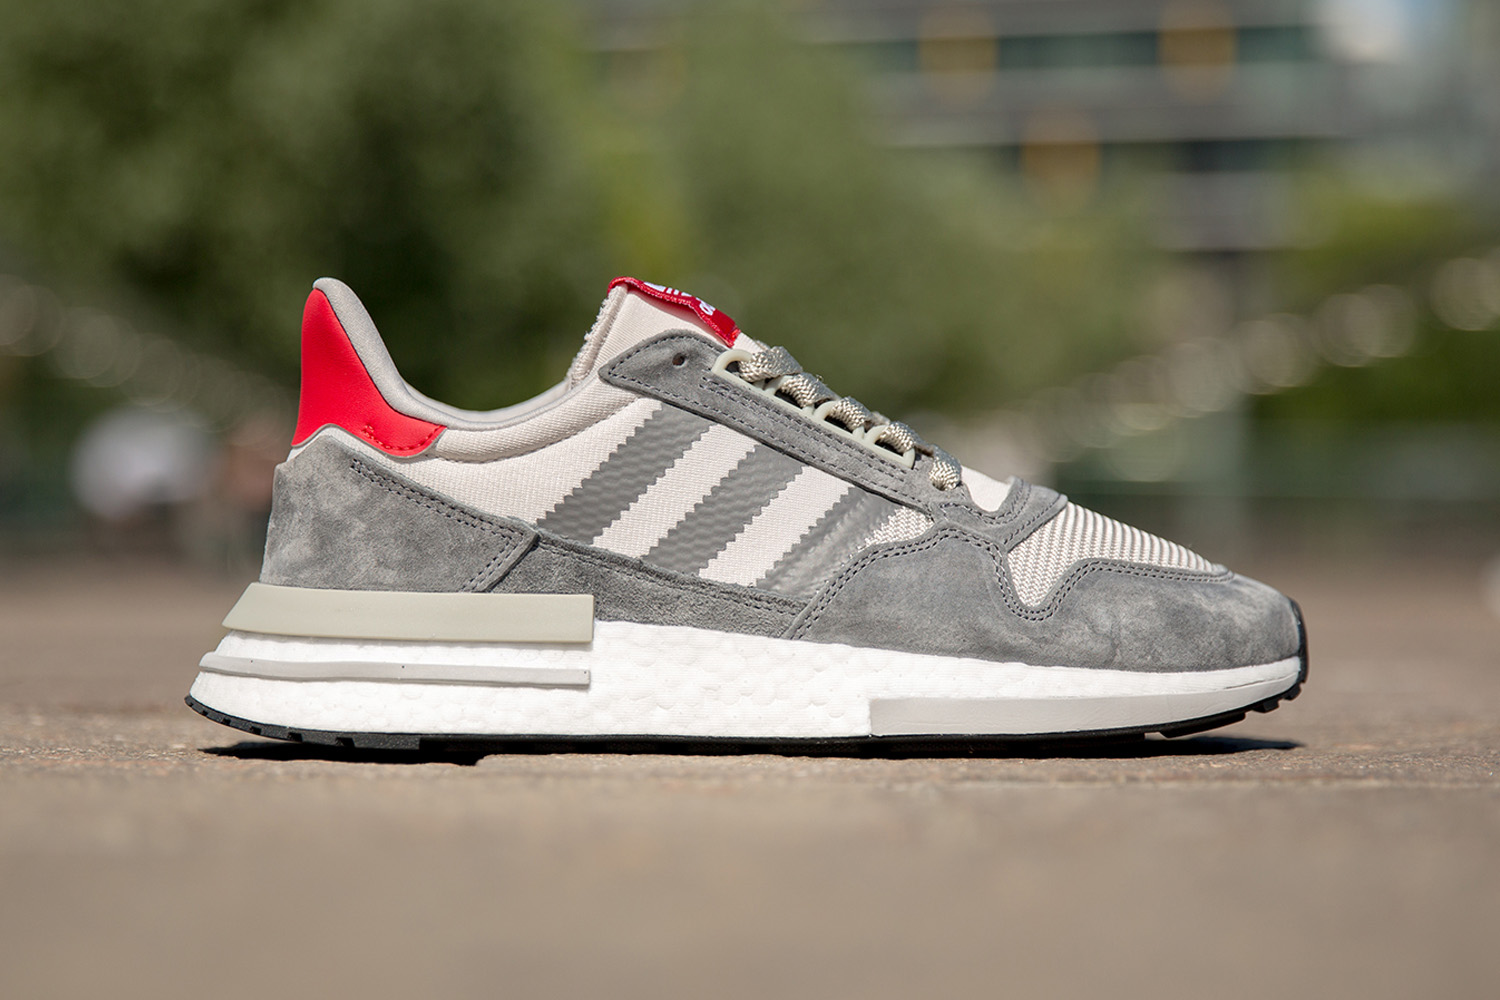 adidas Originals ZX500 OG BOOST Release Details Kicks Shoes Trainers Sneakers Footwear Available Purchase Buy Cop Soon Saturday 7 July £120 GBP